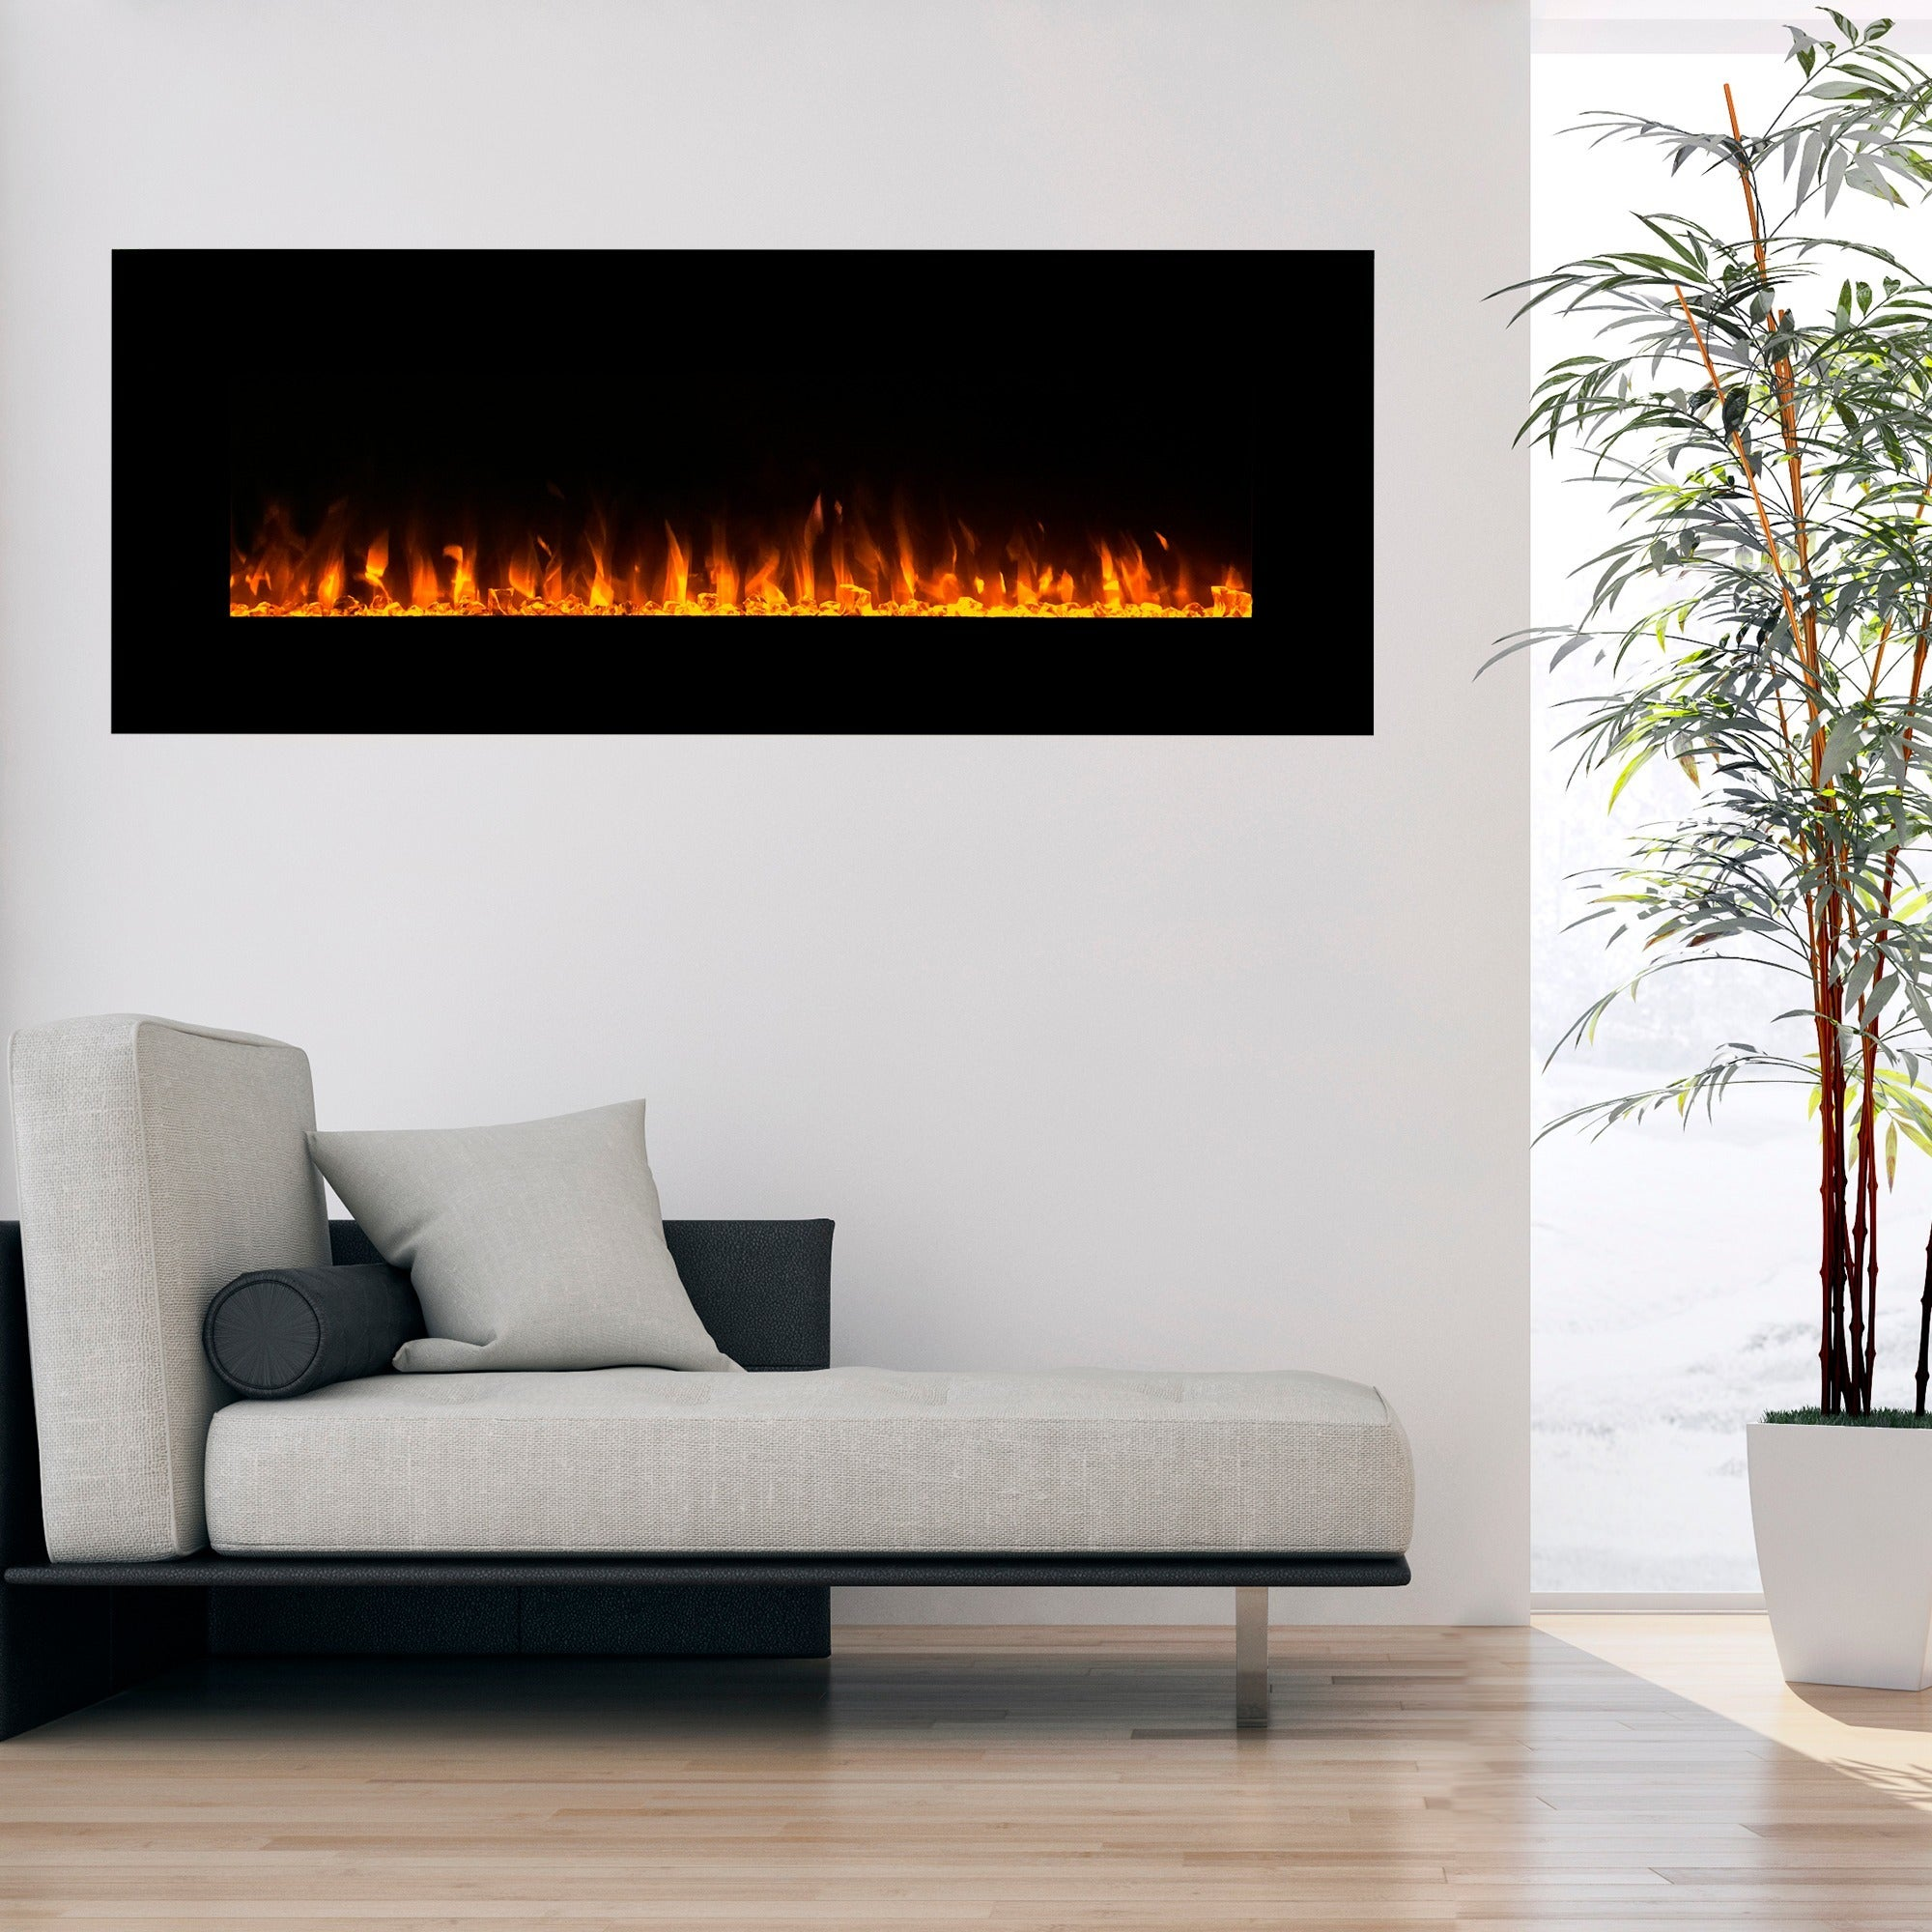 fireplace mounted electric improvement audioflare wall wayfair touchstone home ca pdp stainless